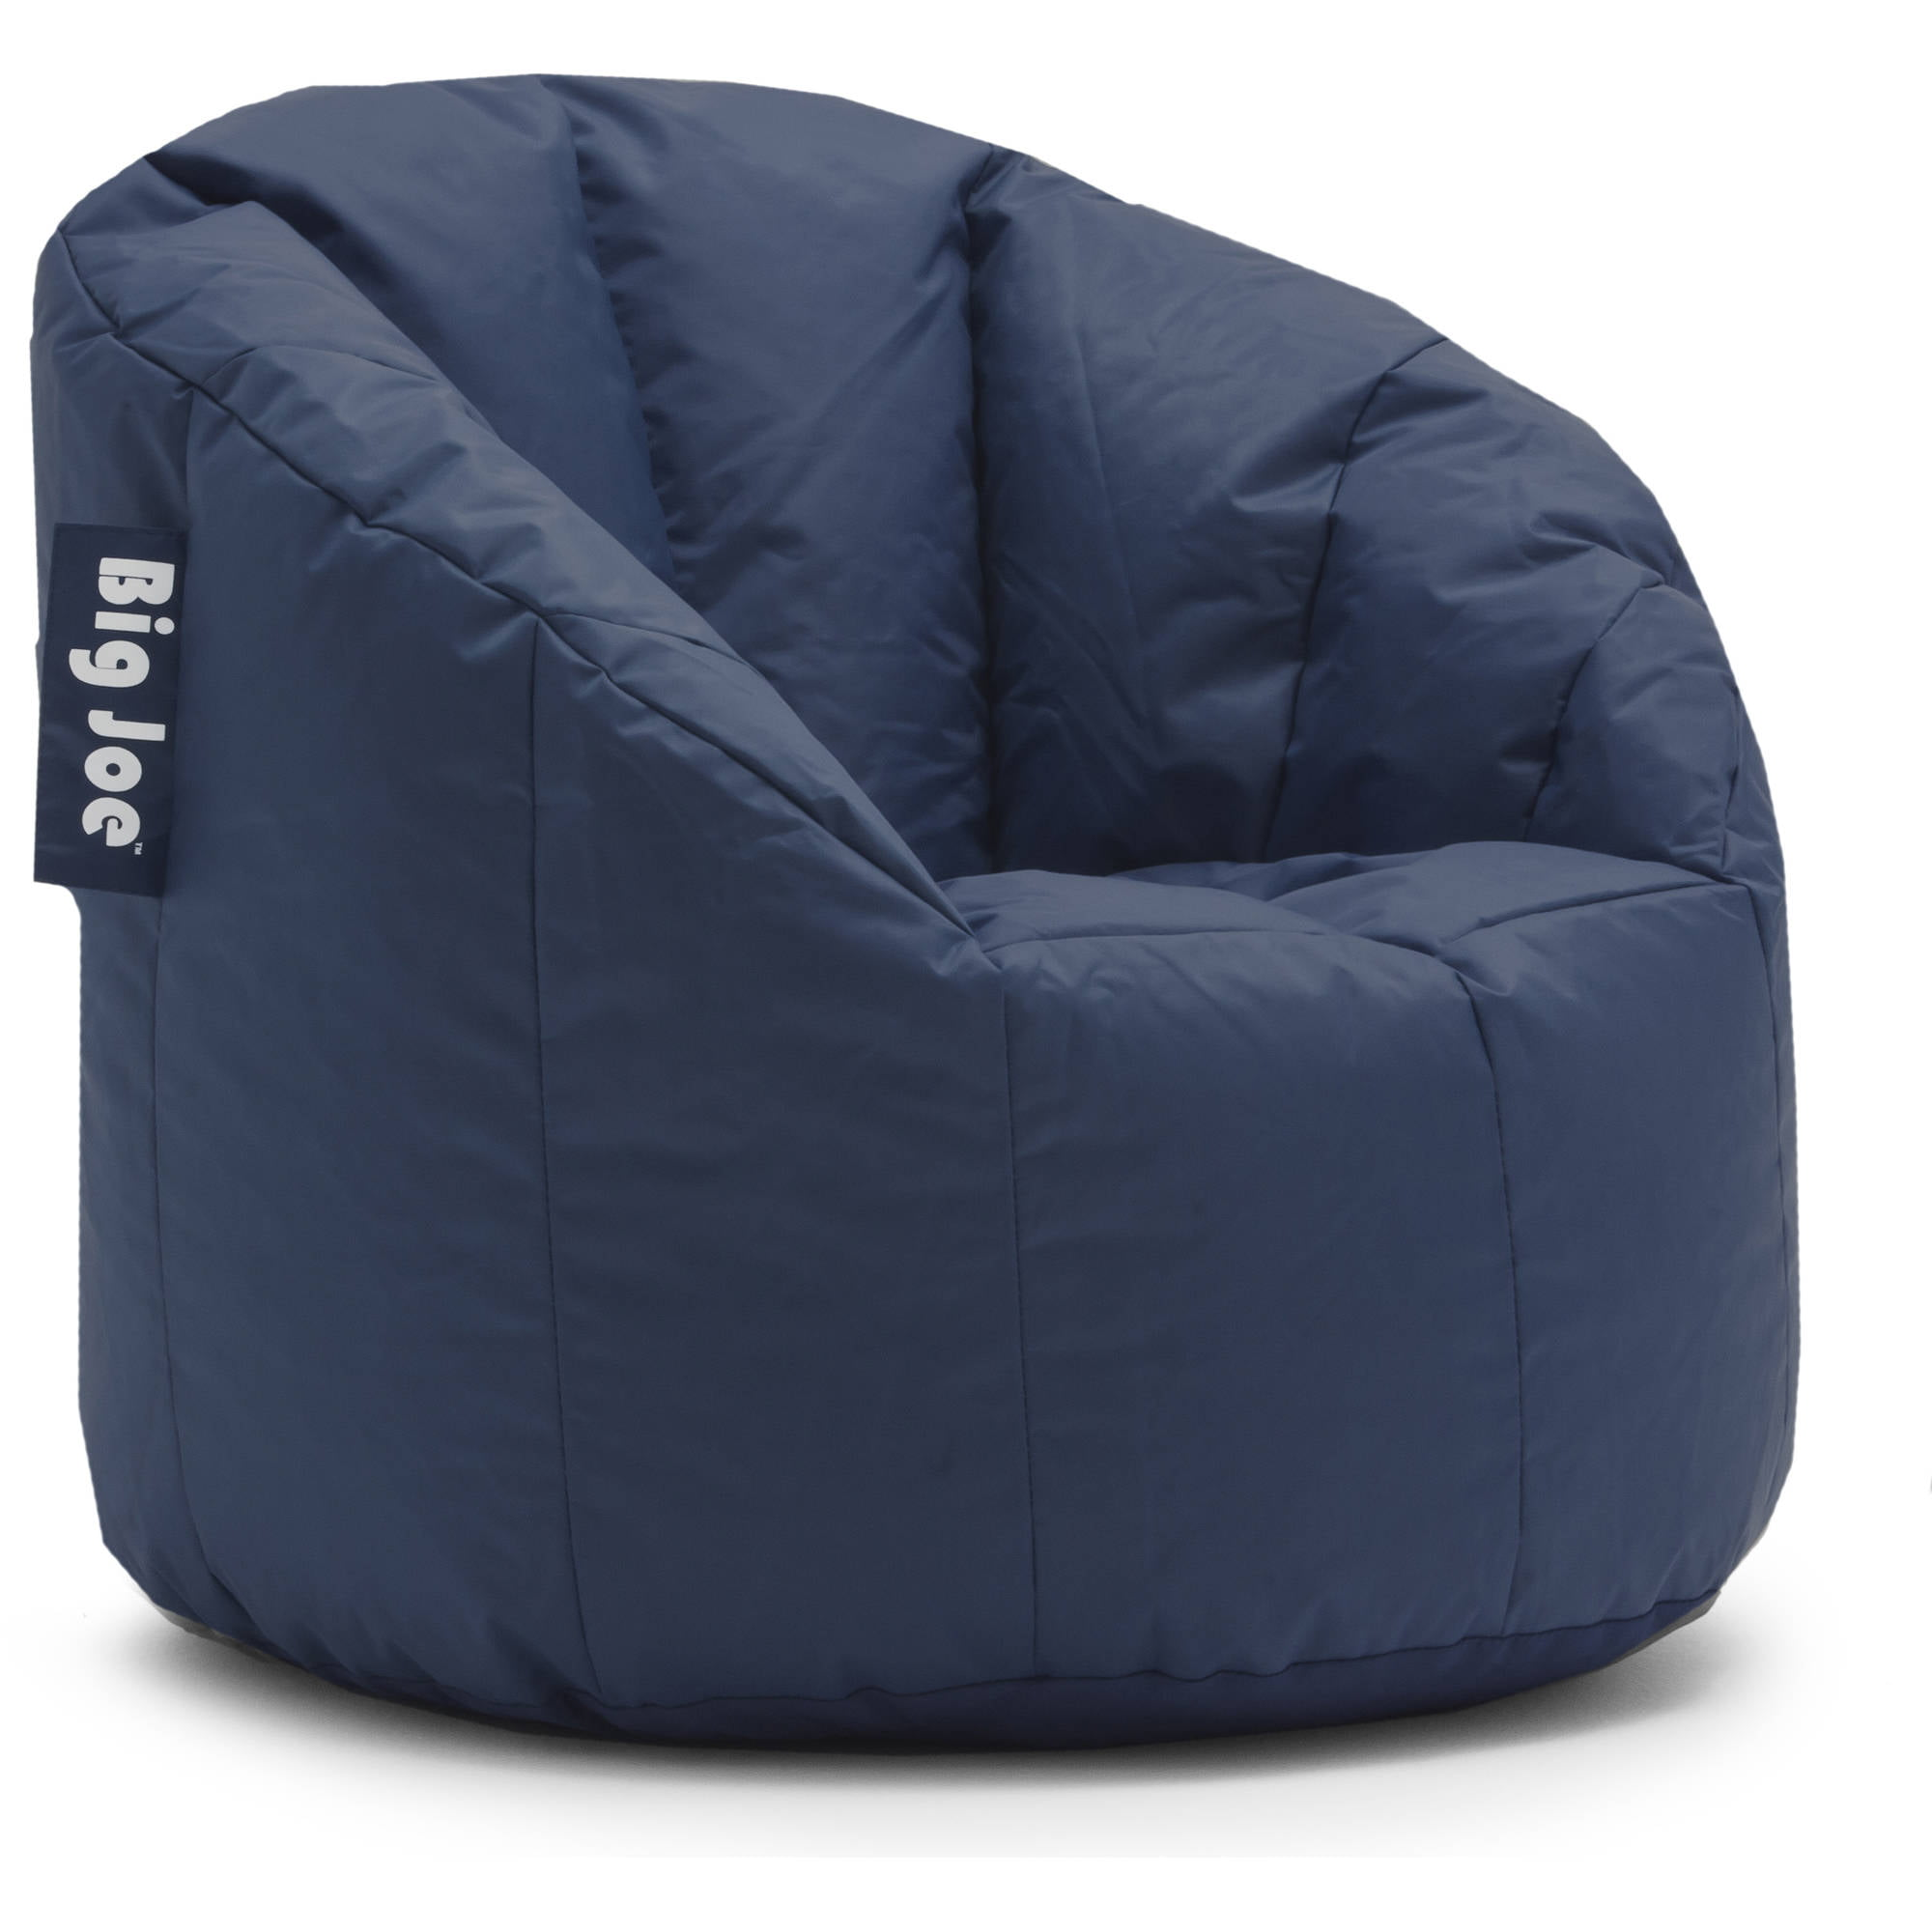 Bed chair pillow walmart - Bed Chair Pillow Walmart 0